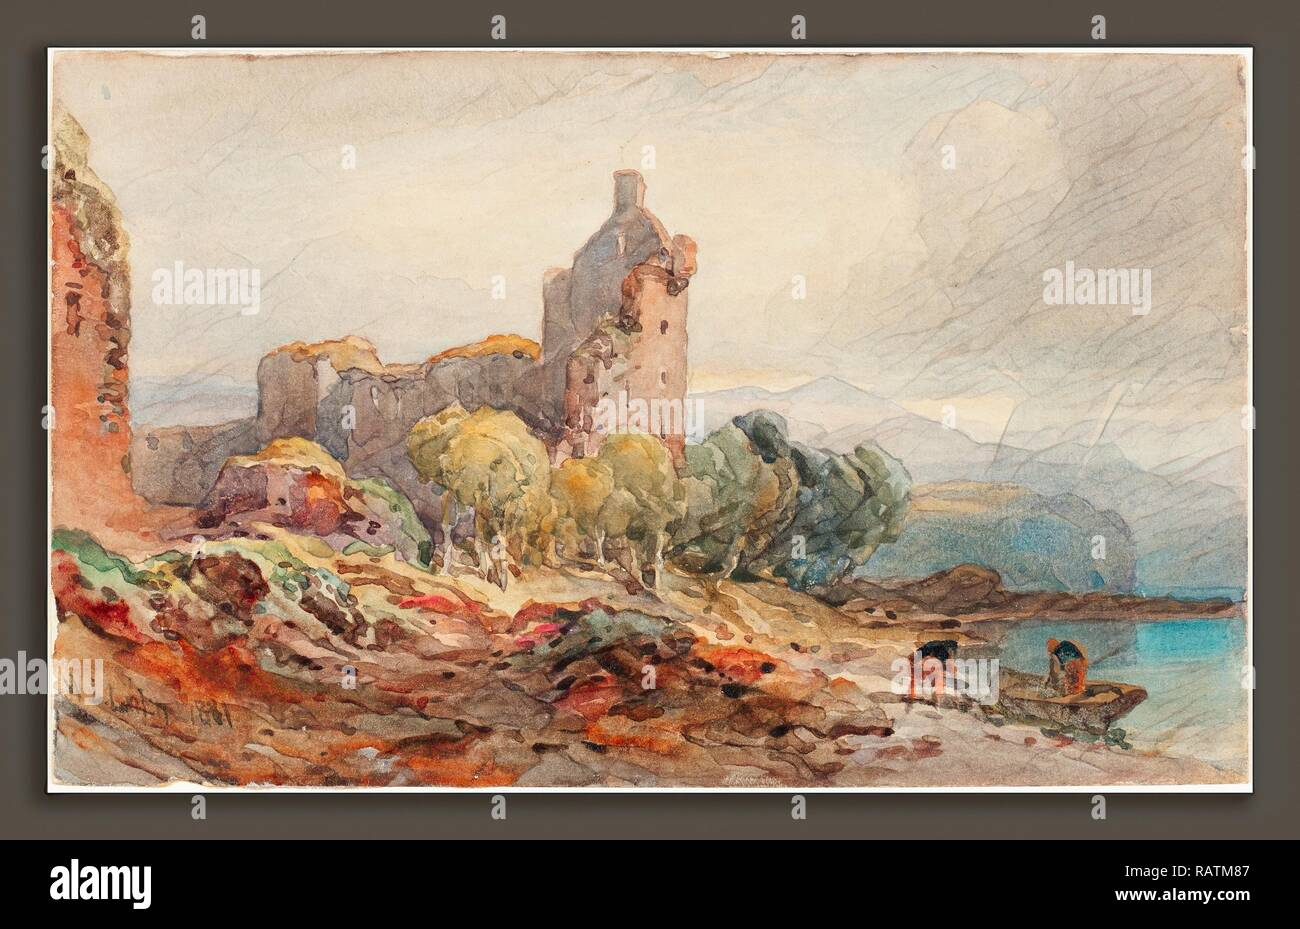 William Leighton Leitch (British, 1804 - 1883), A Ruined Castle on a Lake, 1881, watercolor over graphite on wove reimagined - Stock Image